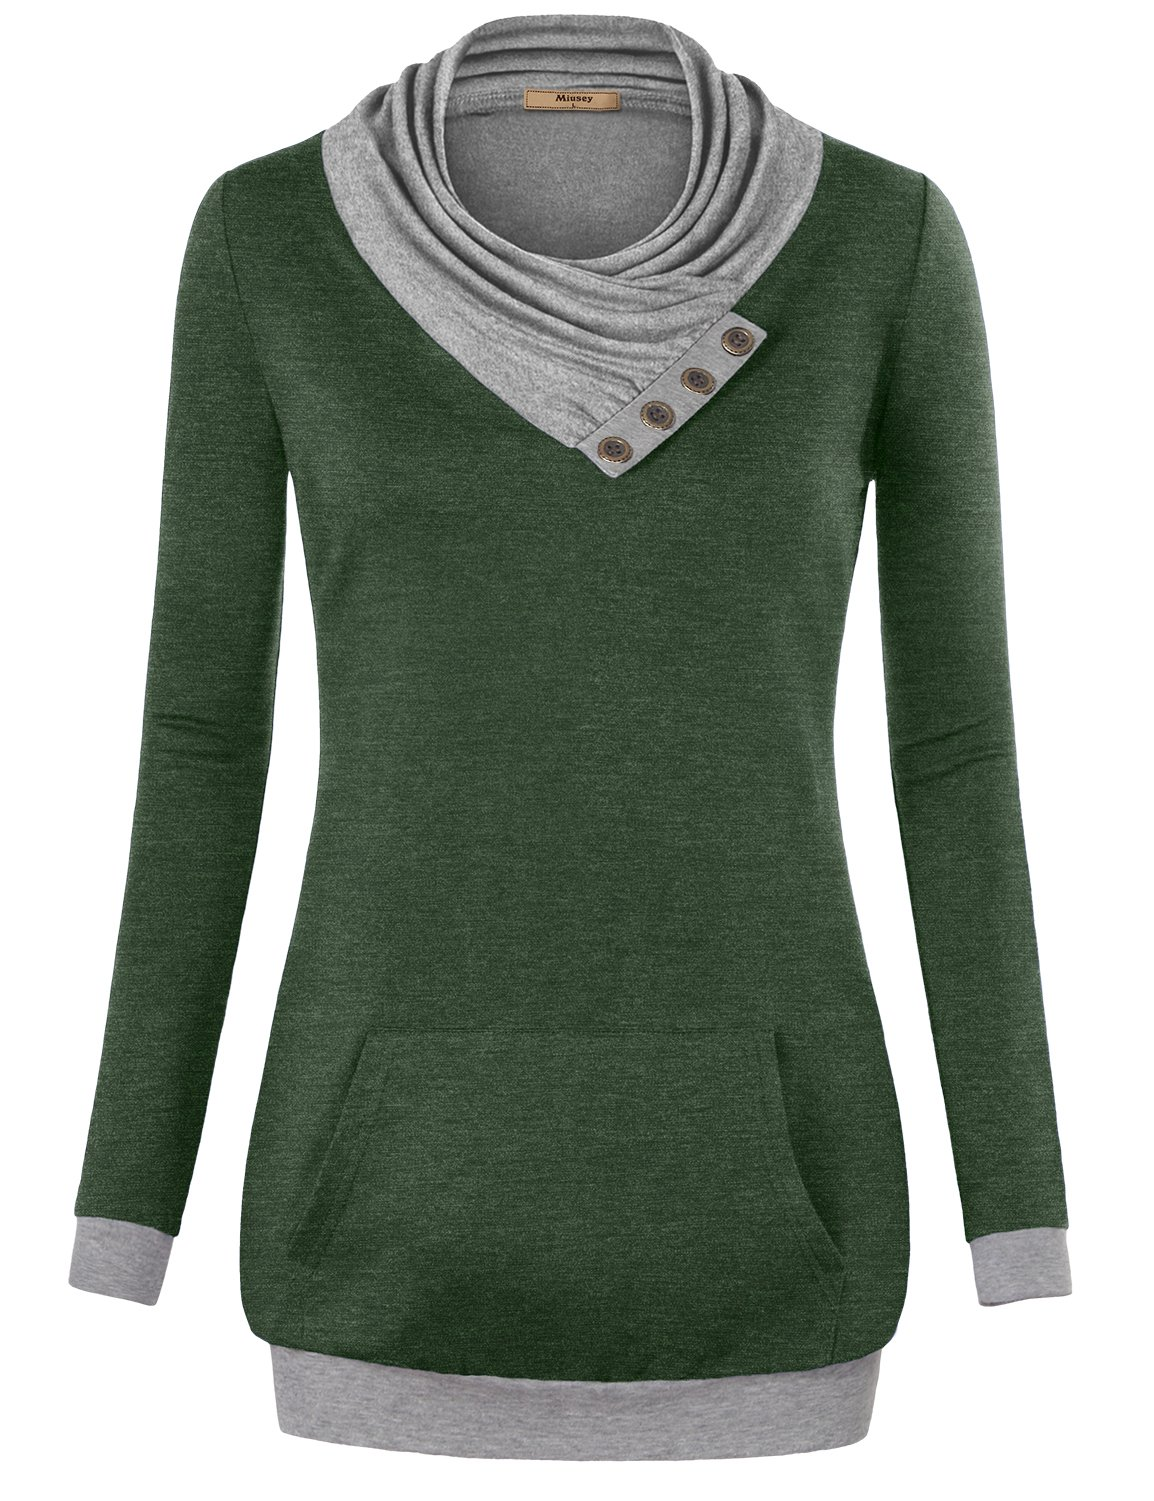 Miusey Workout Clothes, Women's Long Sleeve Cowl Neck Pullover Sweatshirt with Kangaroo Pocket Green Large